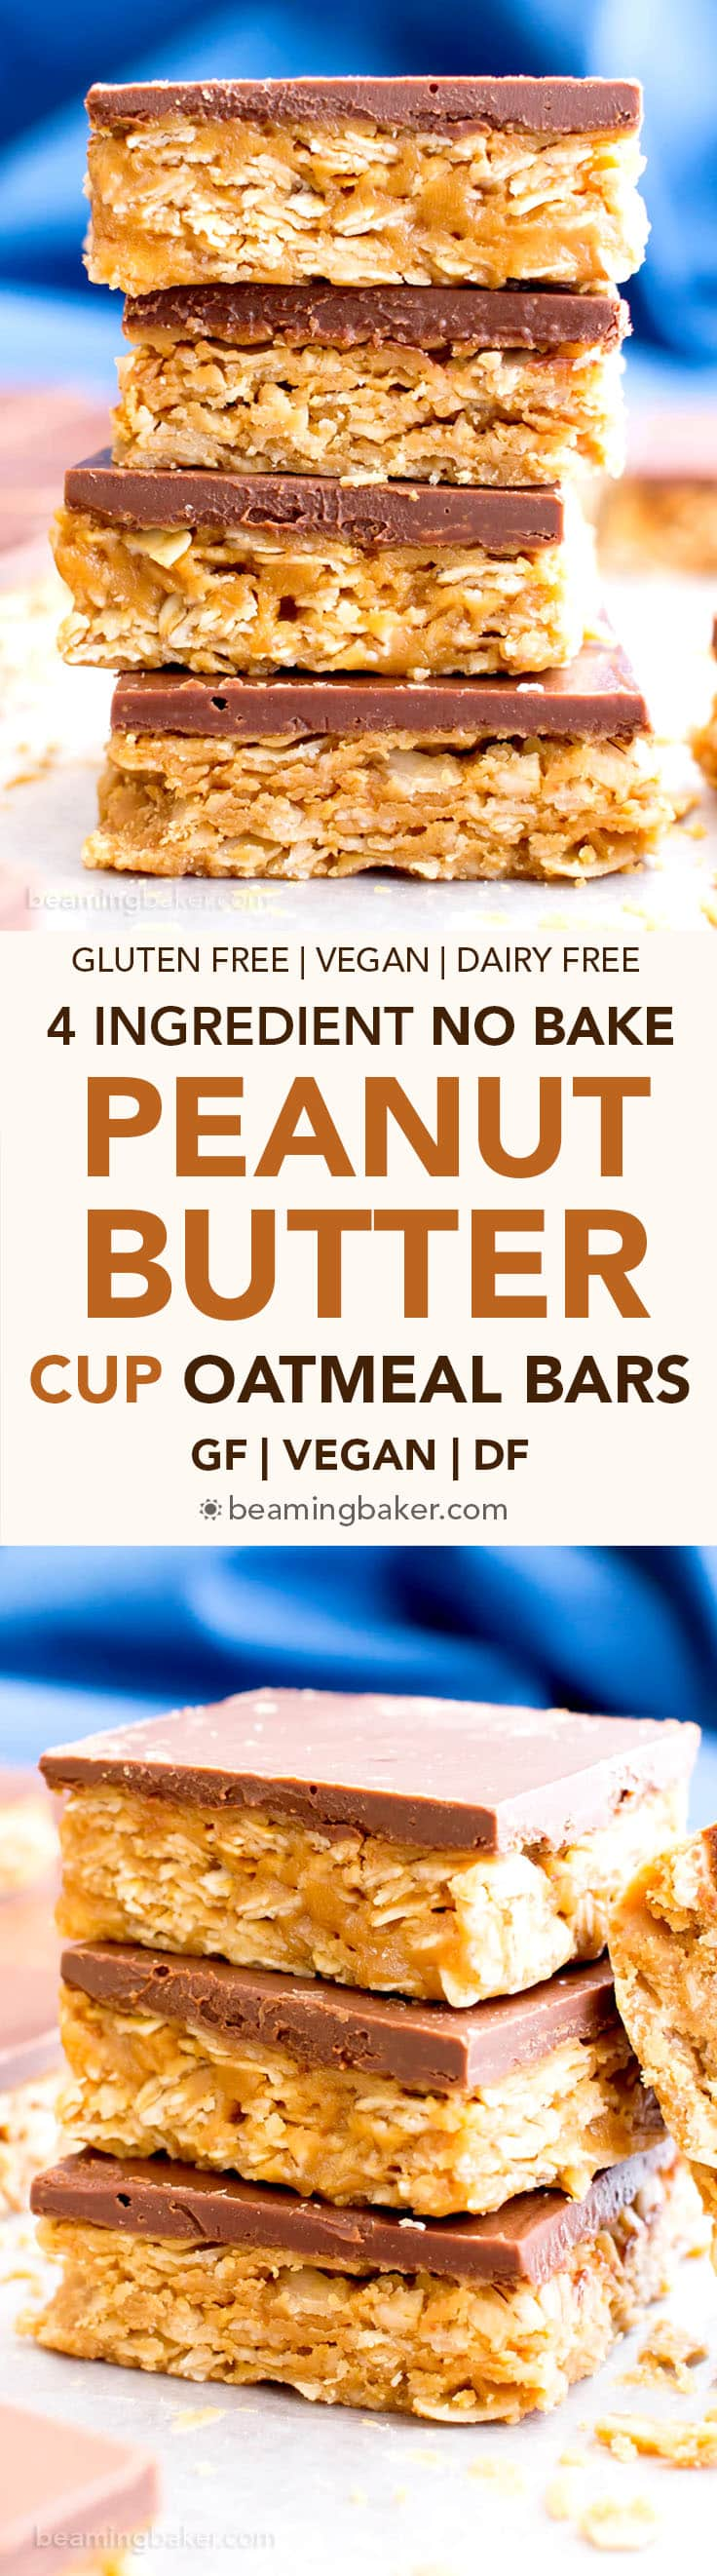 4 Ingredient No Bake Chocolate Peanut Butter Cup Granola Bars (GF, V): an easy, protein-rich recipe for decadent PB granola bars covered in chocolate, made with whole ingredients. #Vegan #ProteinPacked #GlutenFree #DairyFree #WholeGrain | BeamingBaker.com